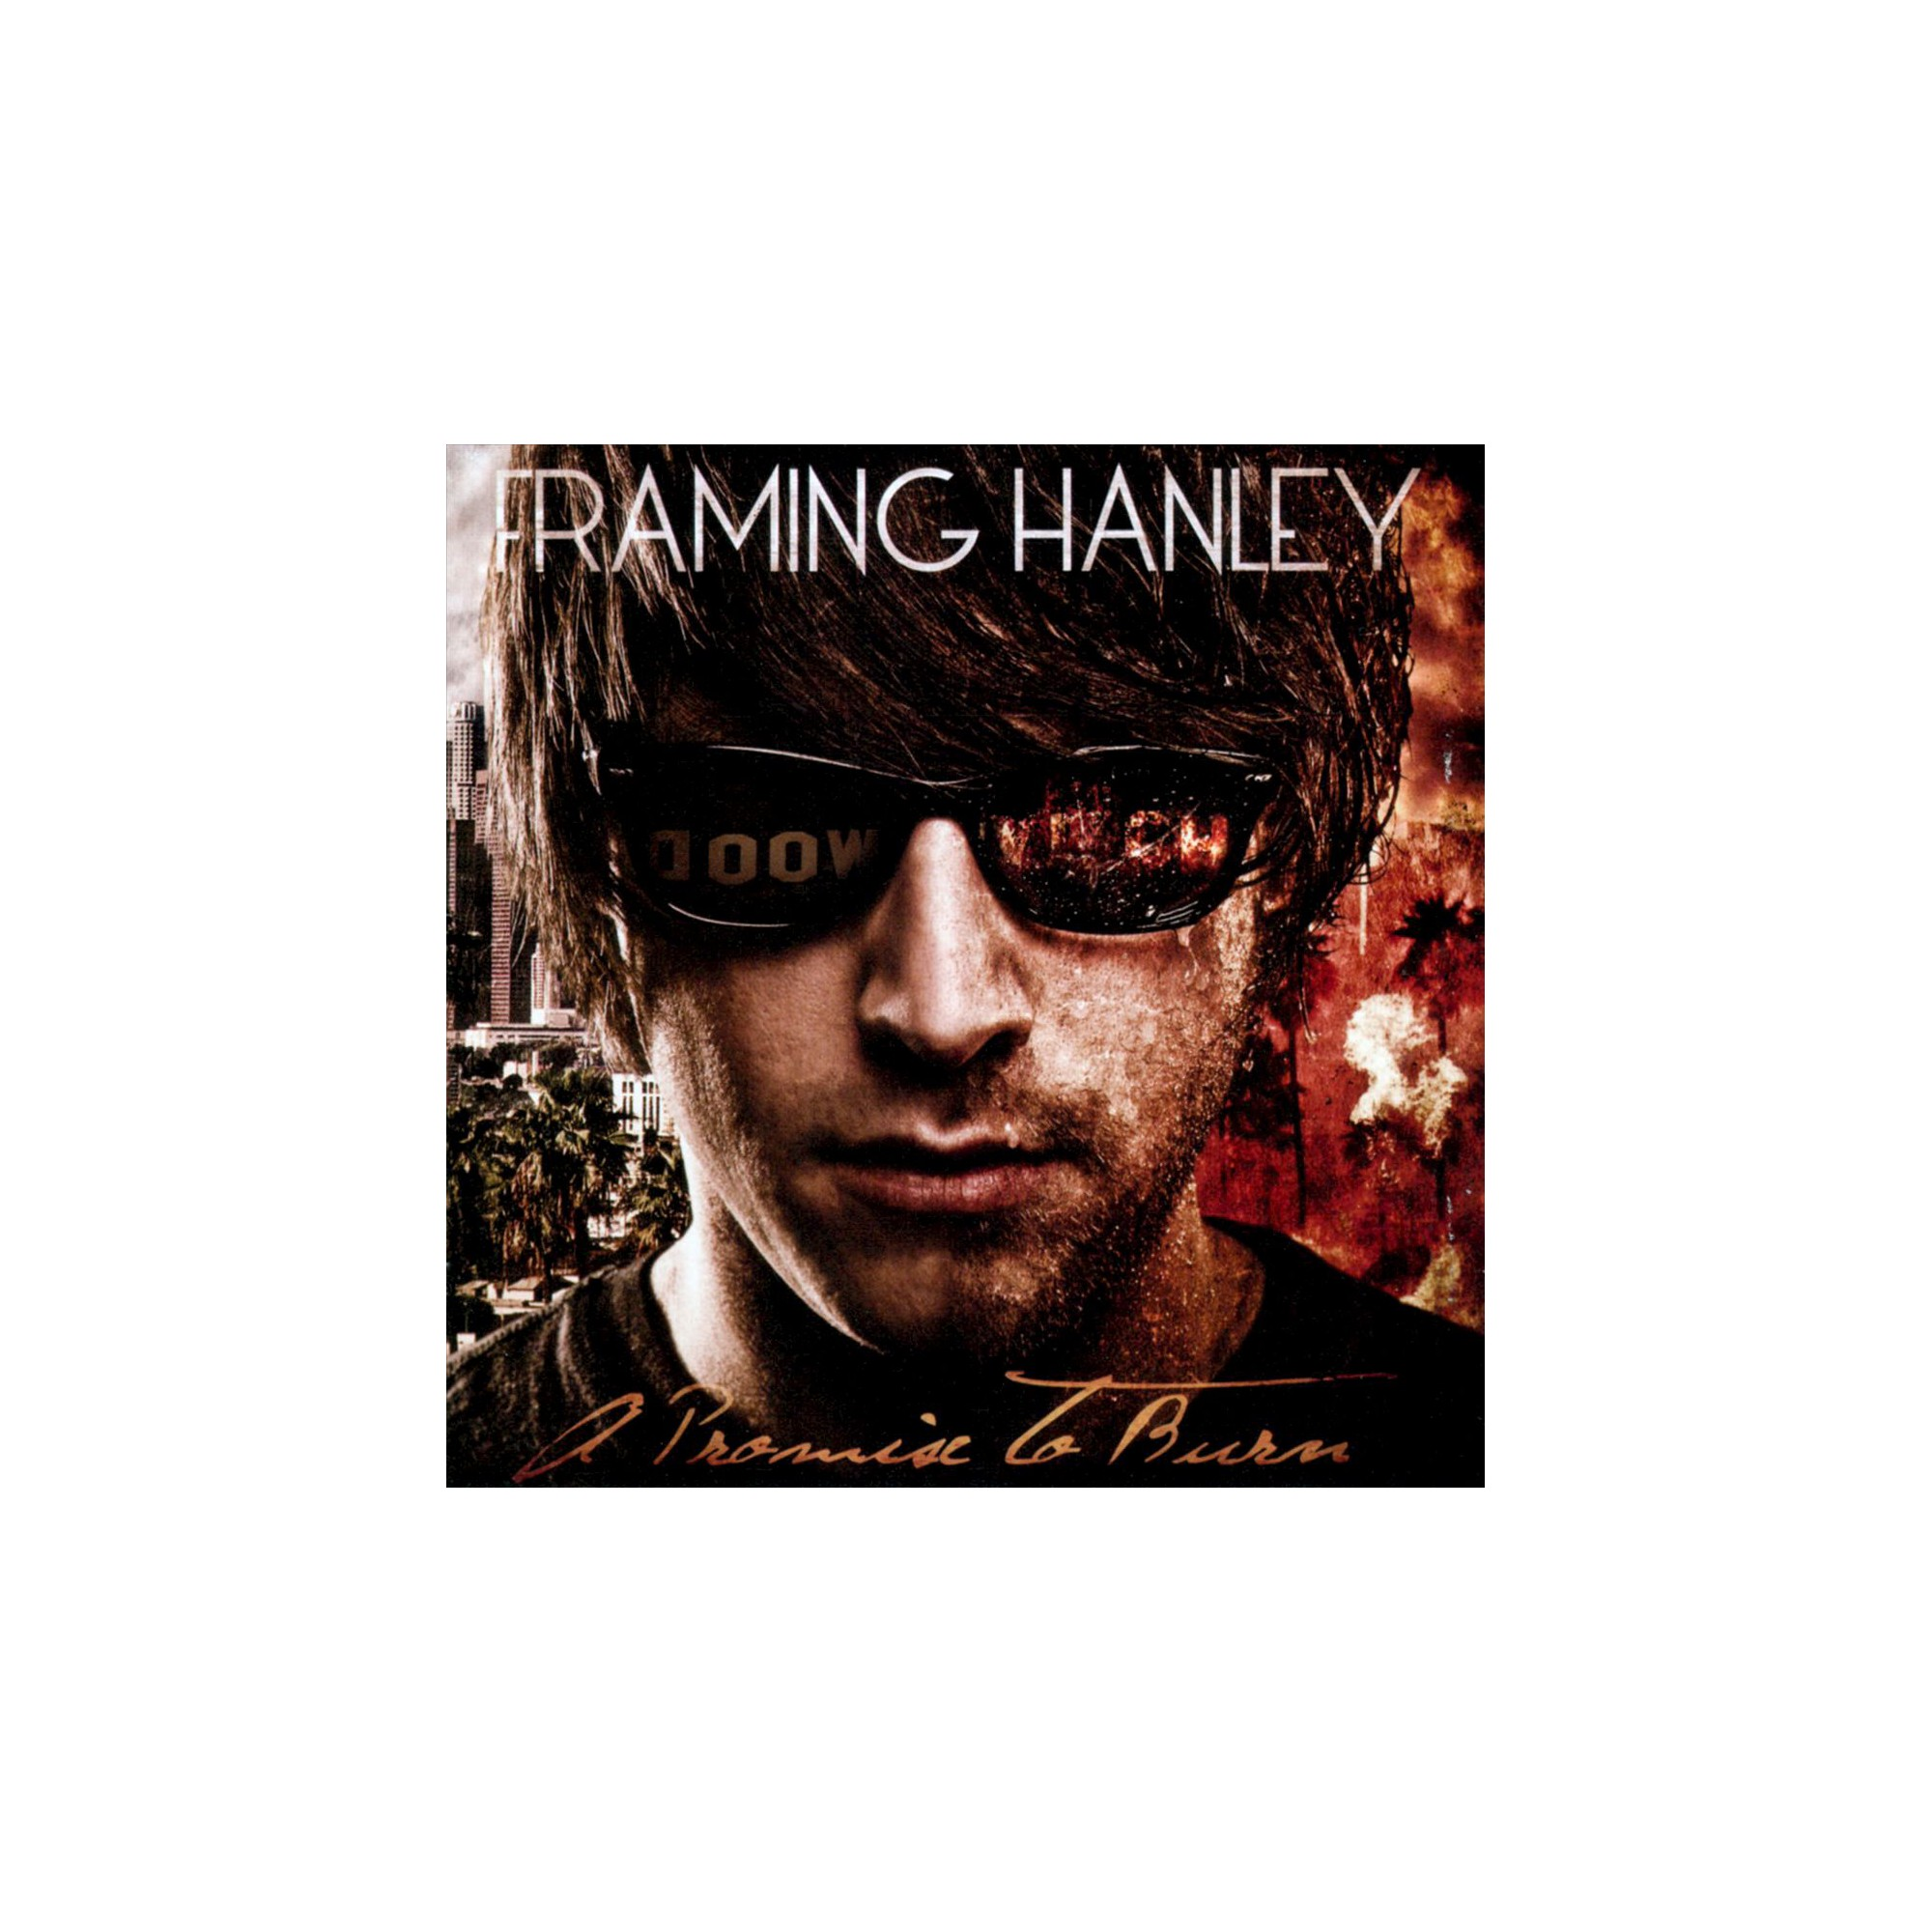 Framing Hanley - A Promise to Burn [Explicit Lyrics] (CD) | Products